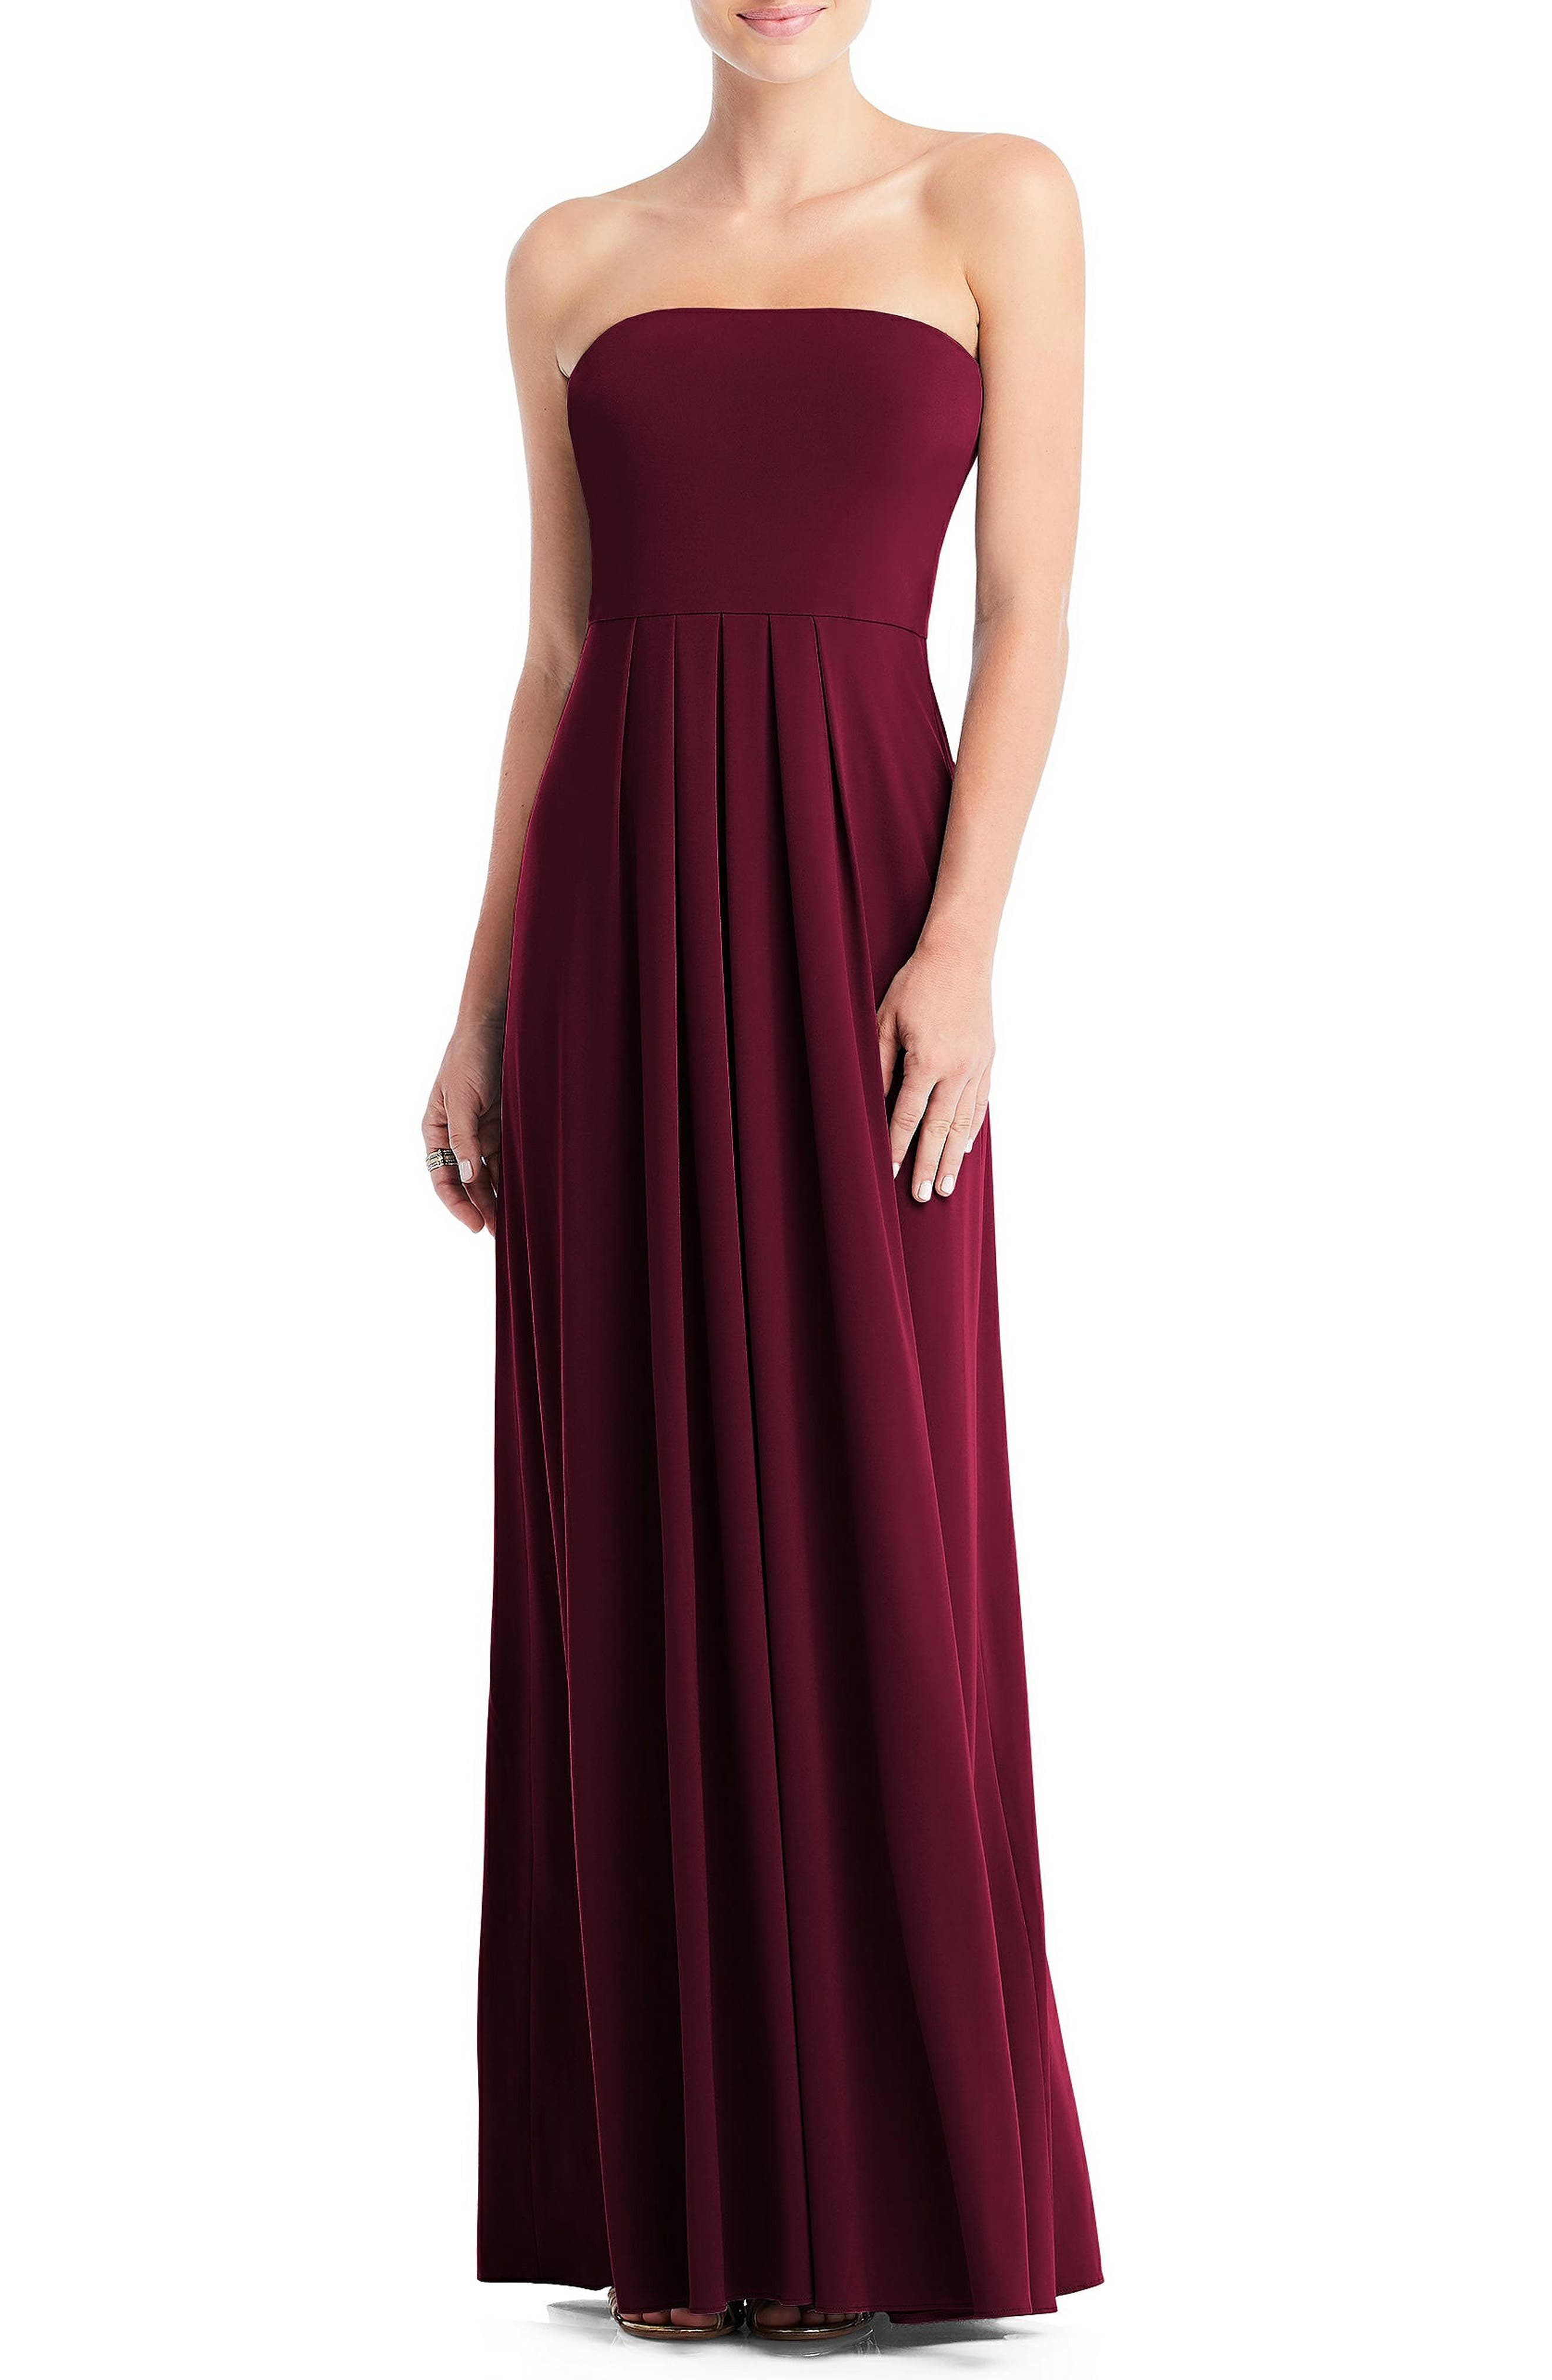 The traveler\\\'s dream dress, this bandeau-bodice gown comes with a loop that allows you to configure this style 13 different ways for two weeks of chic looks. Style Name: Dessy Collection Multi-Way Loop A-Line Gown. Style Number: 5955294 1. Available in stores.